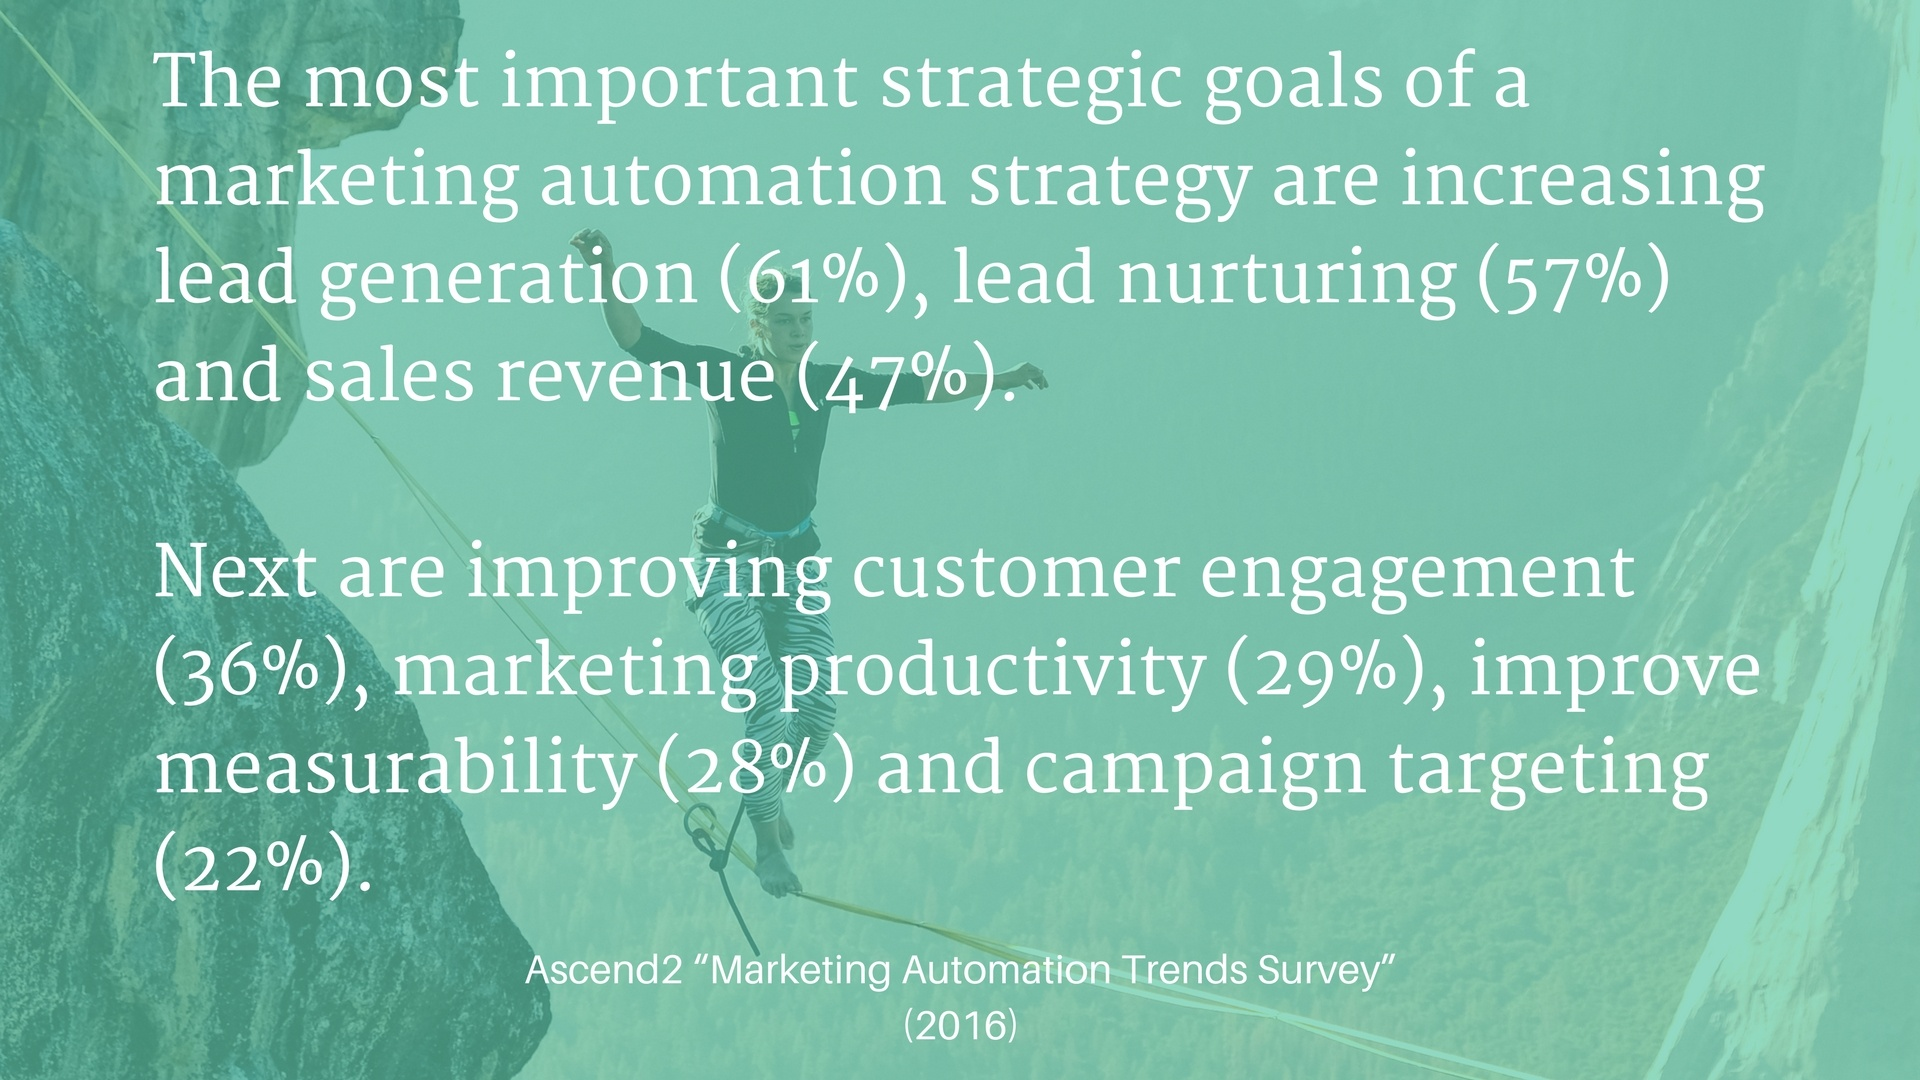 Goals_Content_Marketing_Automation.jpg